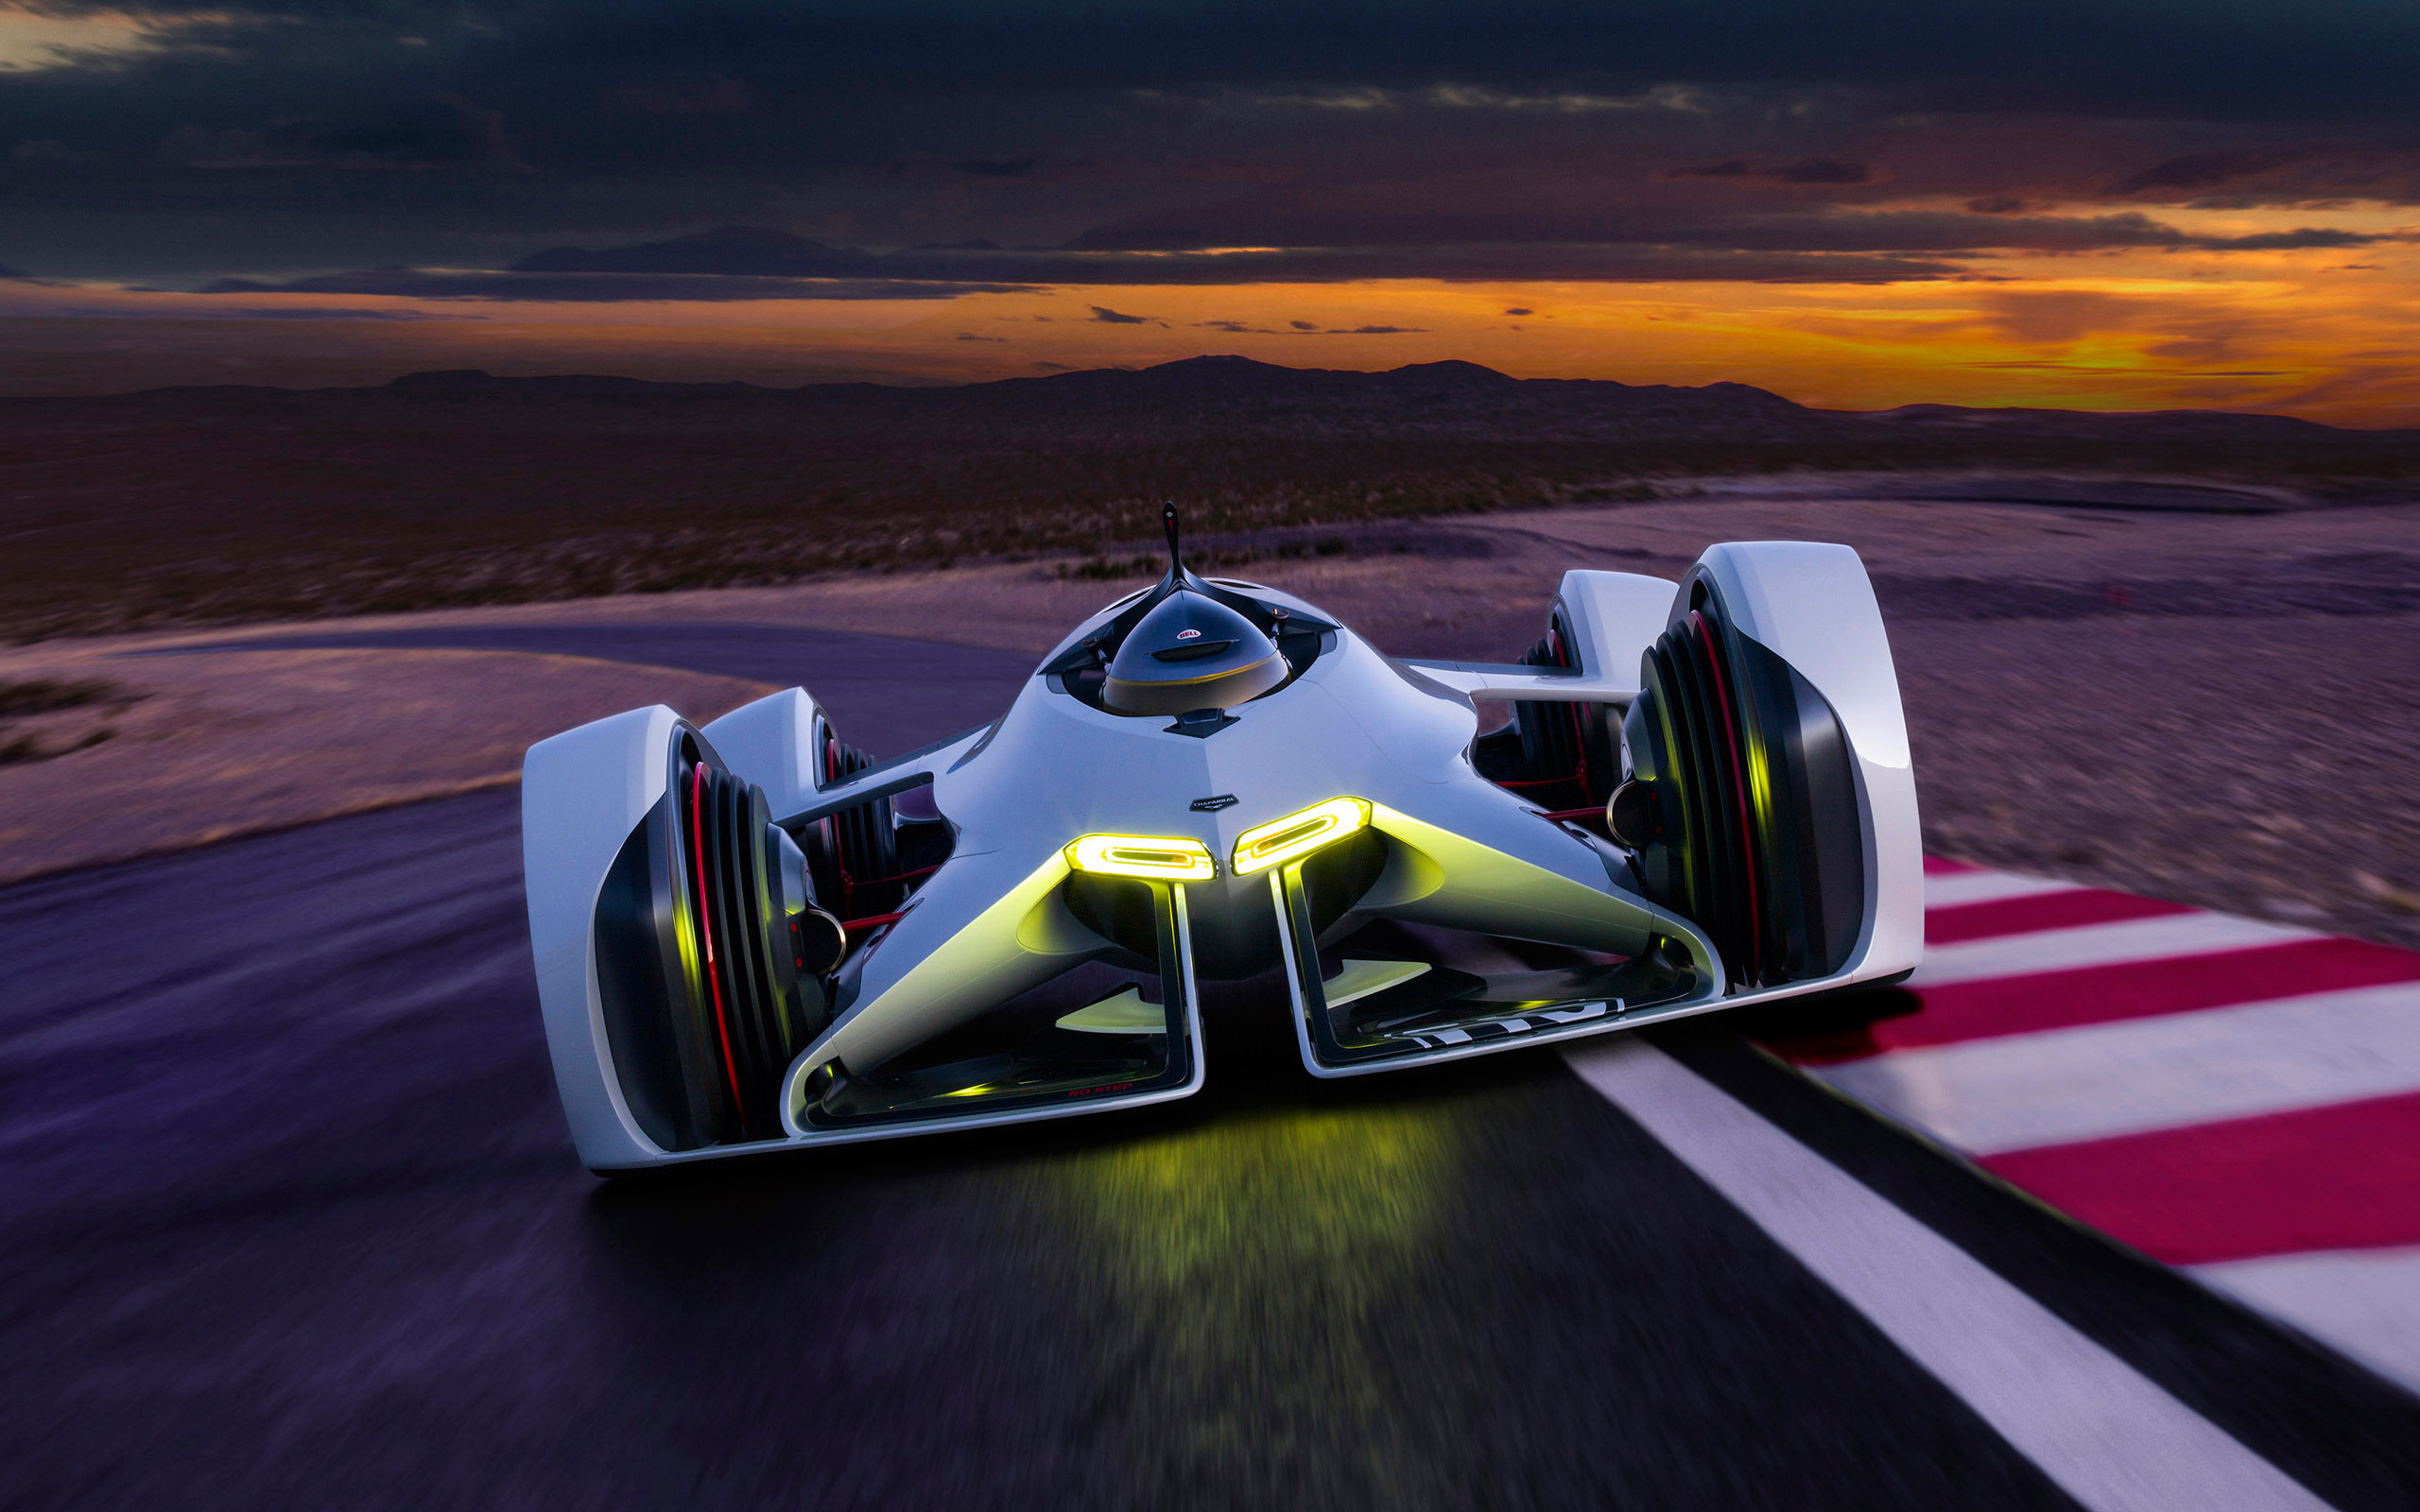 HD Wallpapers 2014 Chevrolet Chaparral 2X Vision Gran Turismo Concept